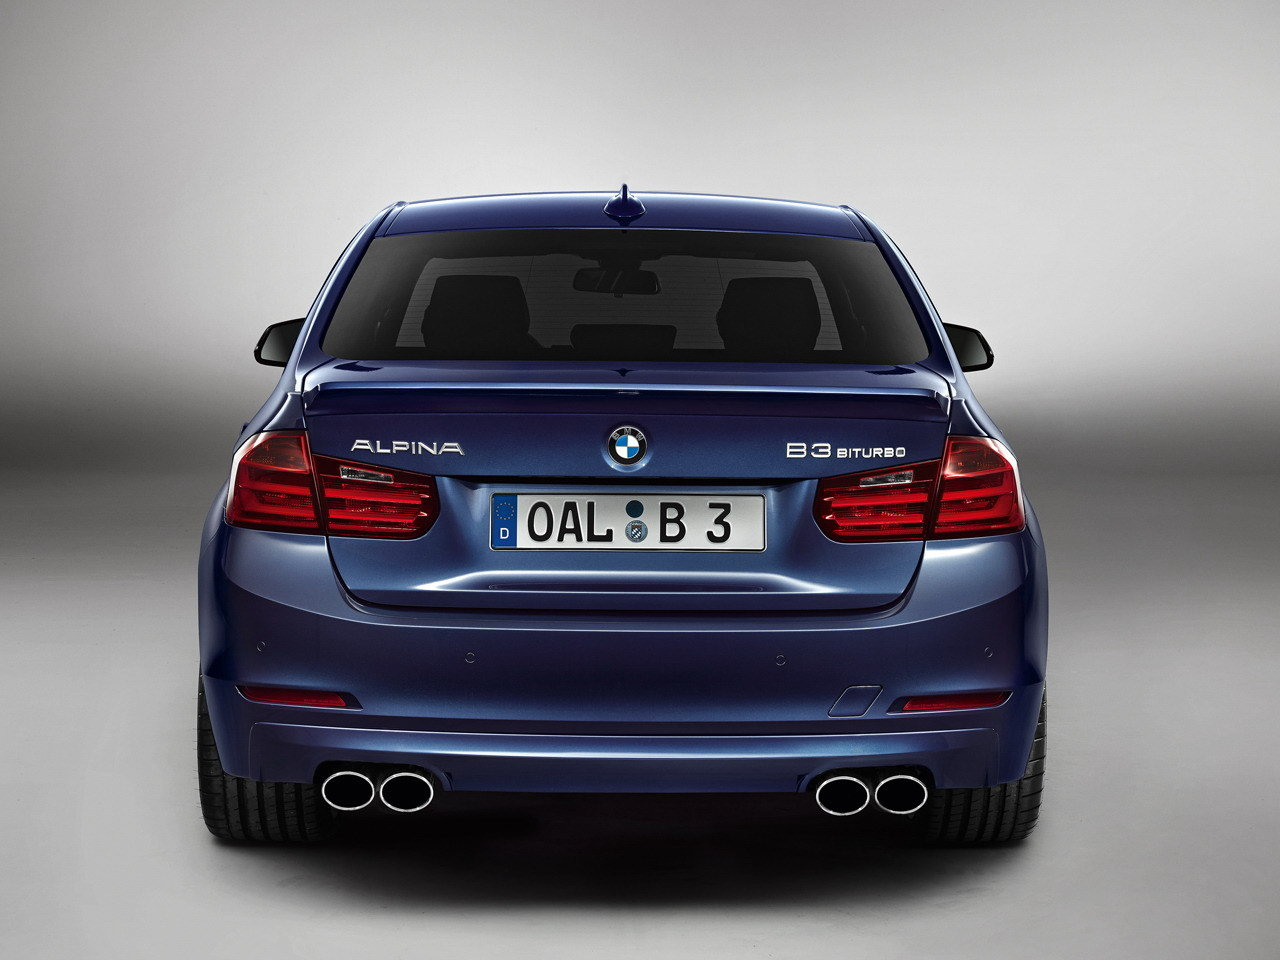 2013 bmw alpina b3 biturbo picture 495688 car review. Black Bedroom Furniture Sets. Home Design Ideas